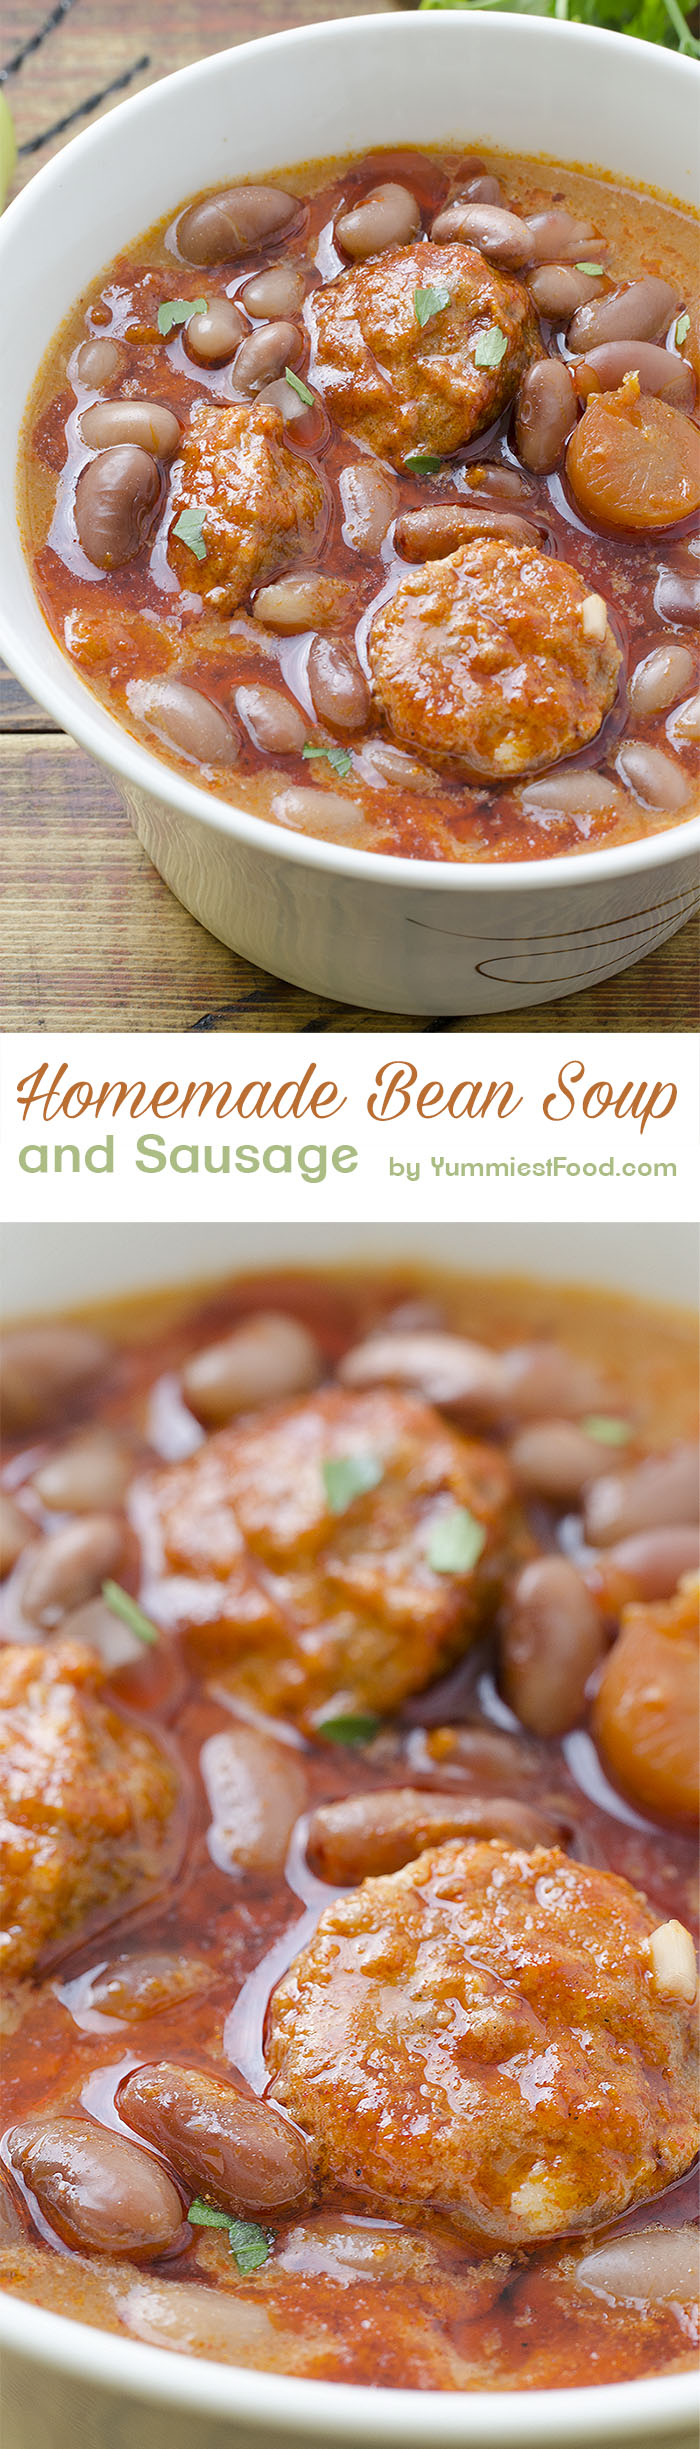 Bean Soup - delicious, homemade recipe and really easy to cook - bean soup!